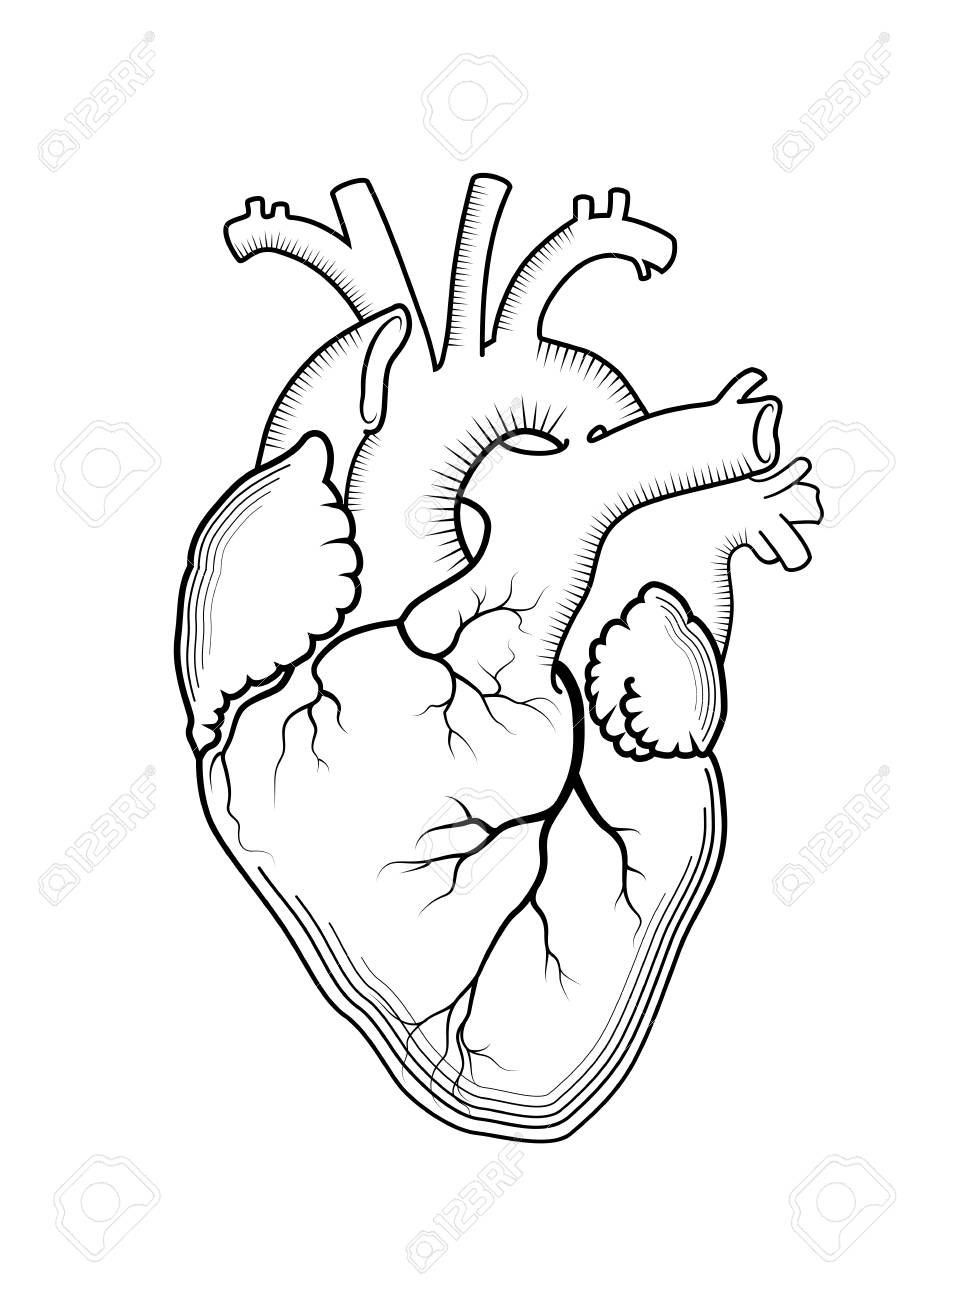 Detailed Heart Drawing : detailed, heart, drawing, Heart., Internal, Human, Organ,, Anatomical, Structure., Engraved.., Royalty, Cliparts,, Vectors,, Stock, Illustration., Image, 90418014.